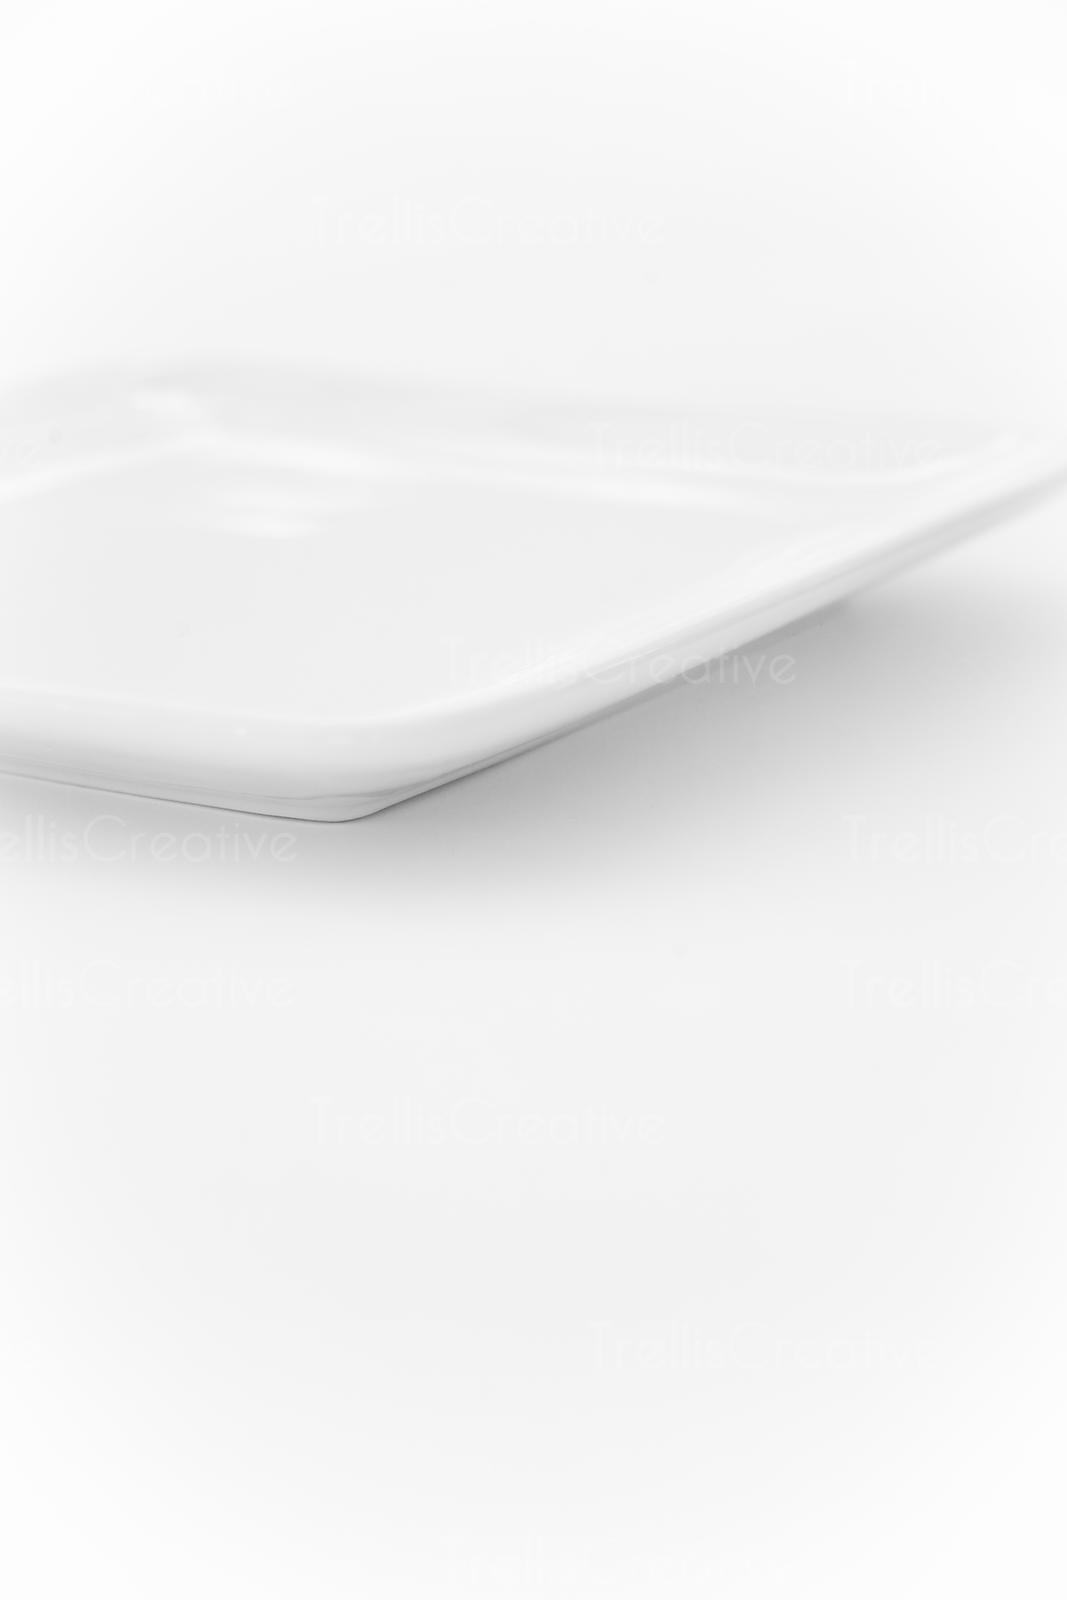 Empty white square dish on white background